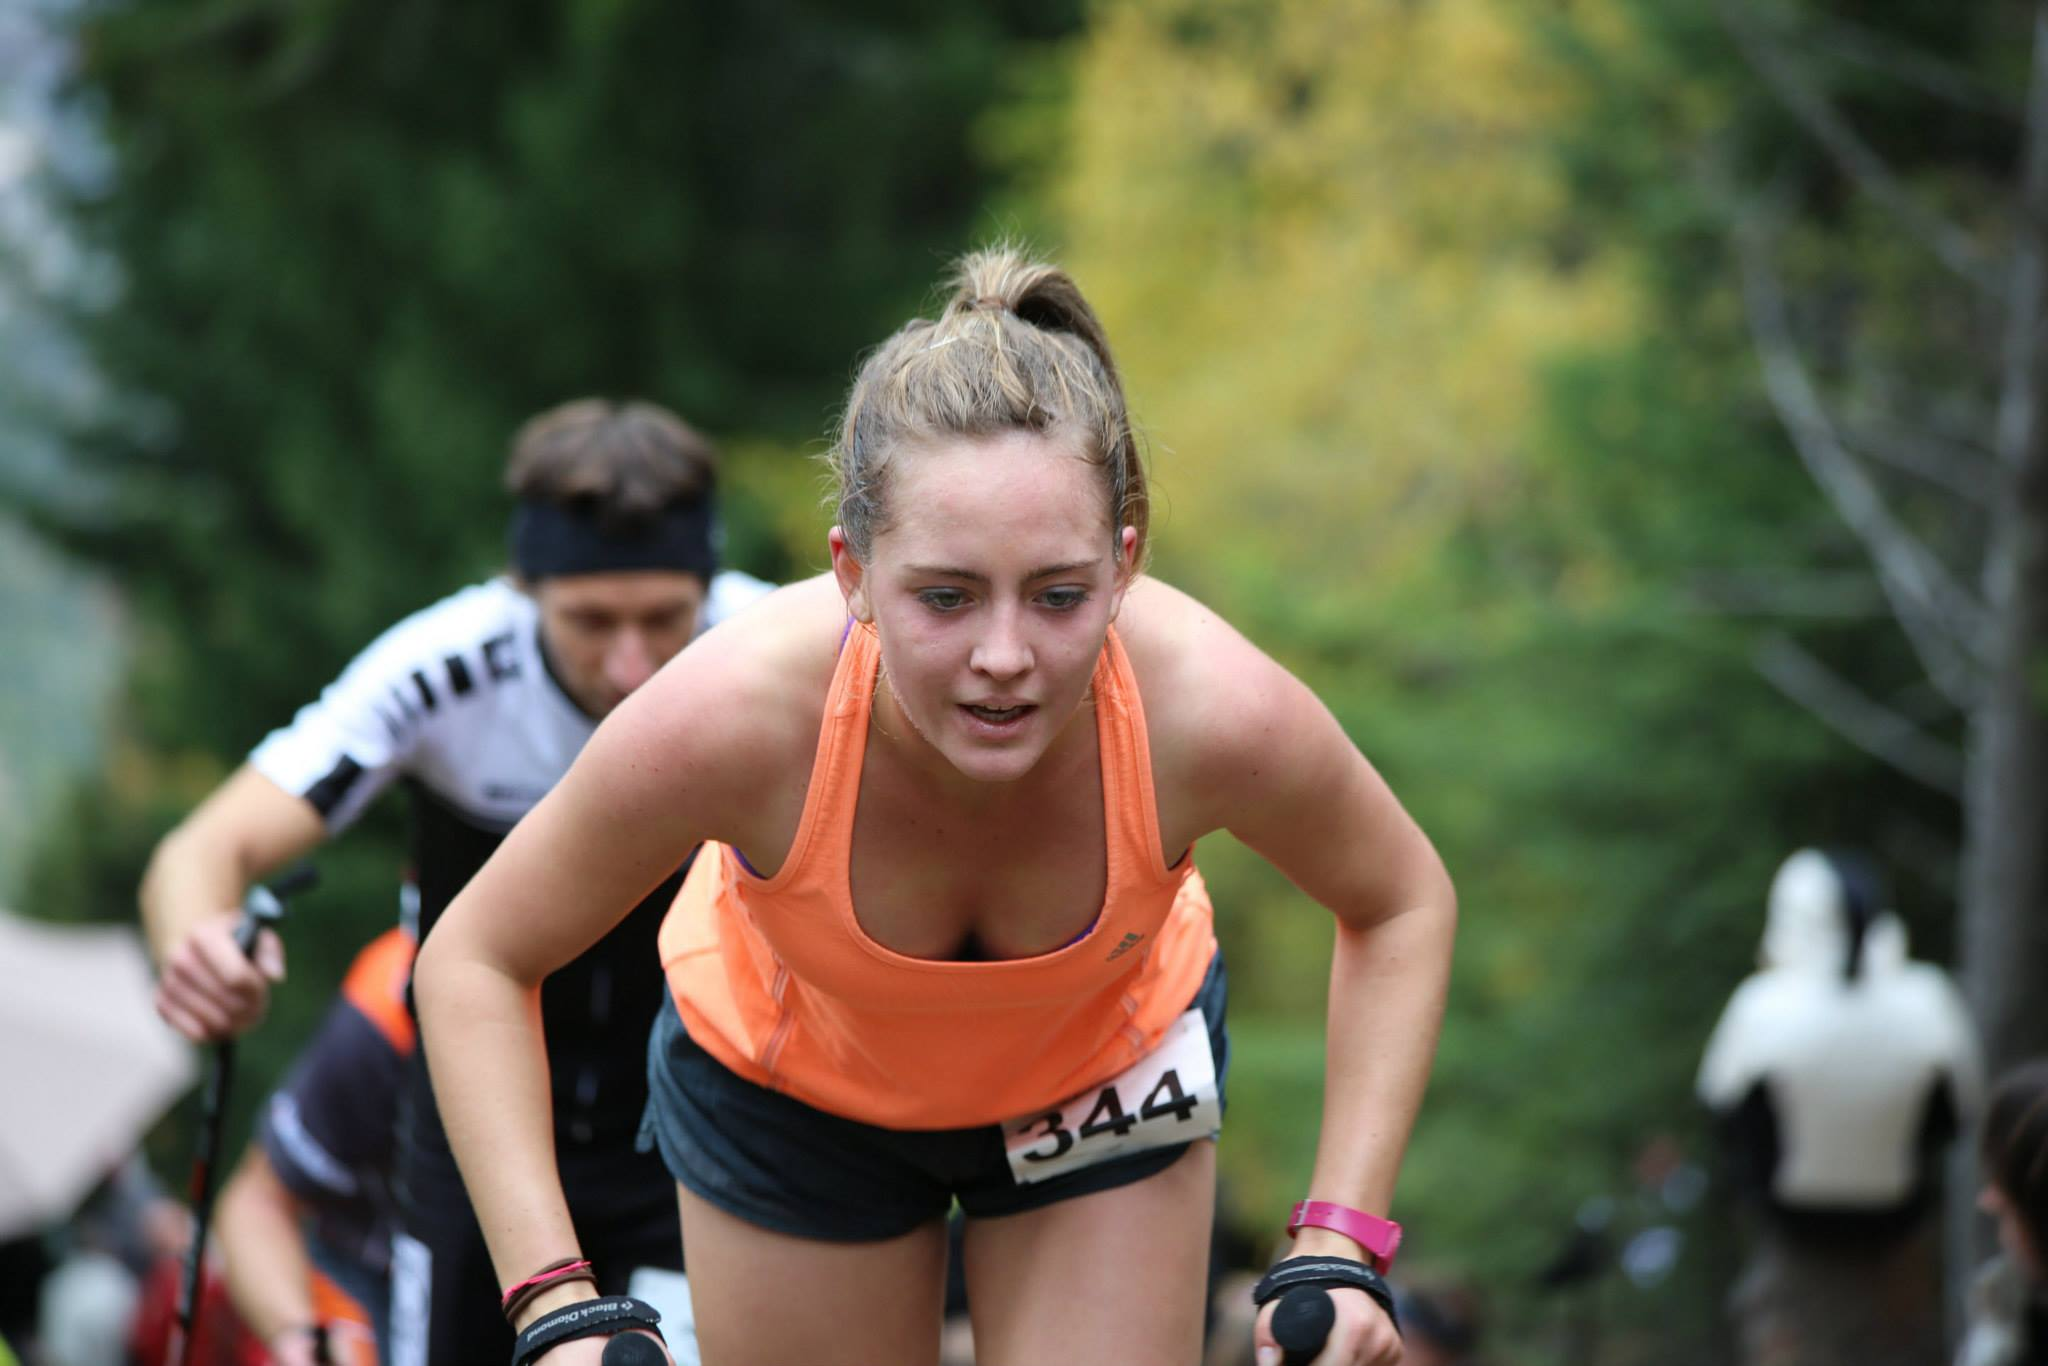 1232997 10152816635279176 5182336994466895082 o - PHOTOS DES ATHLETES FEMININES SUR LE KM VERTICAL DE FULLY (SUISSE) / 25-10-14